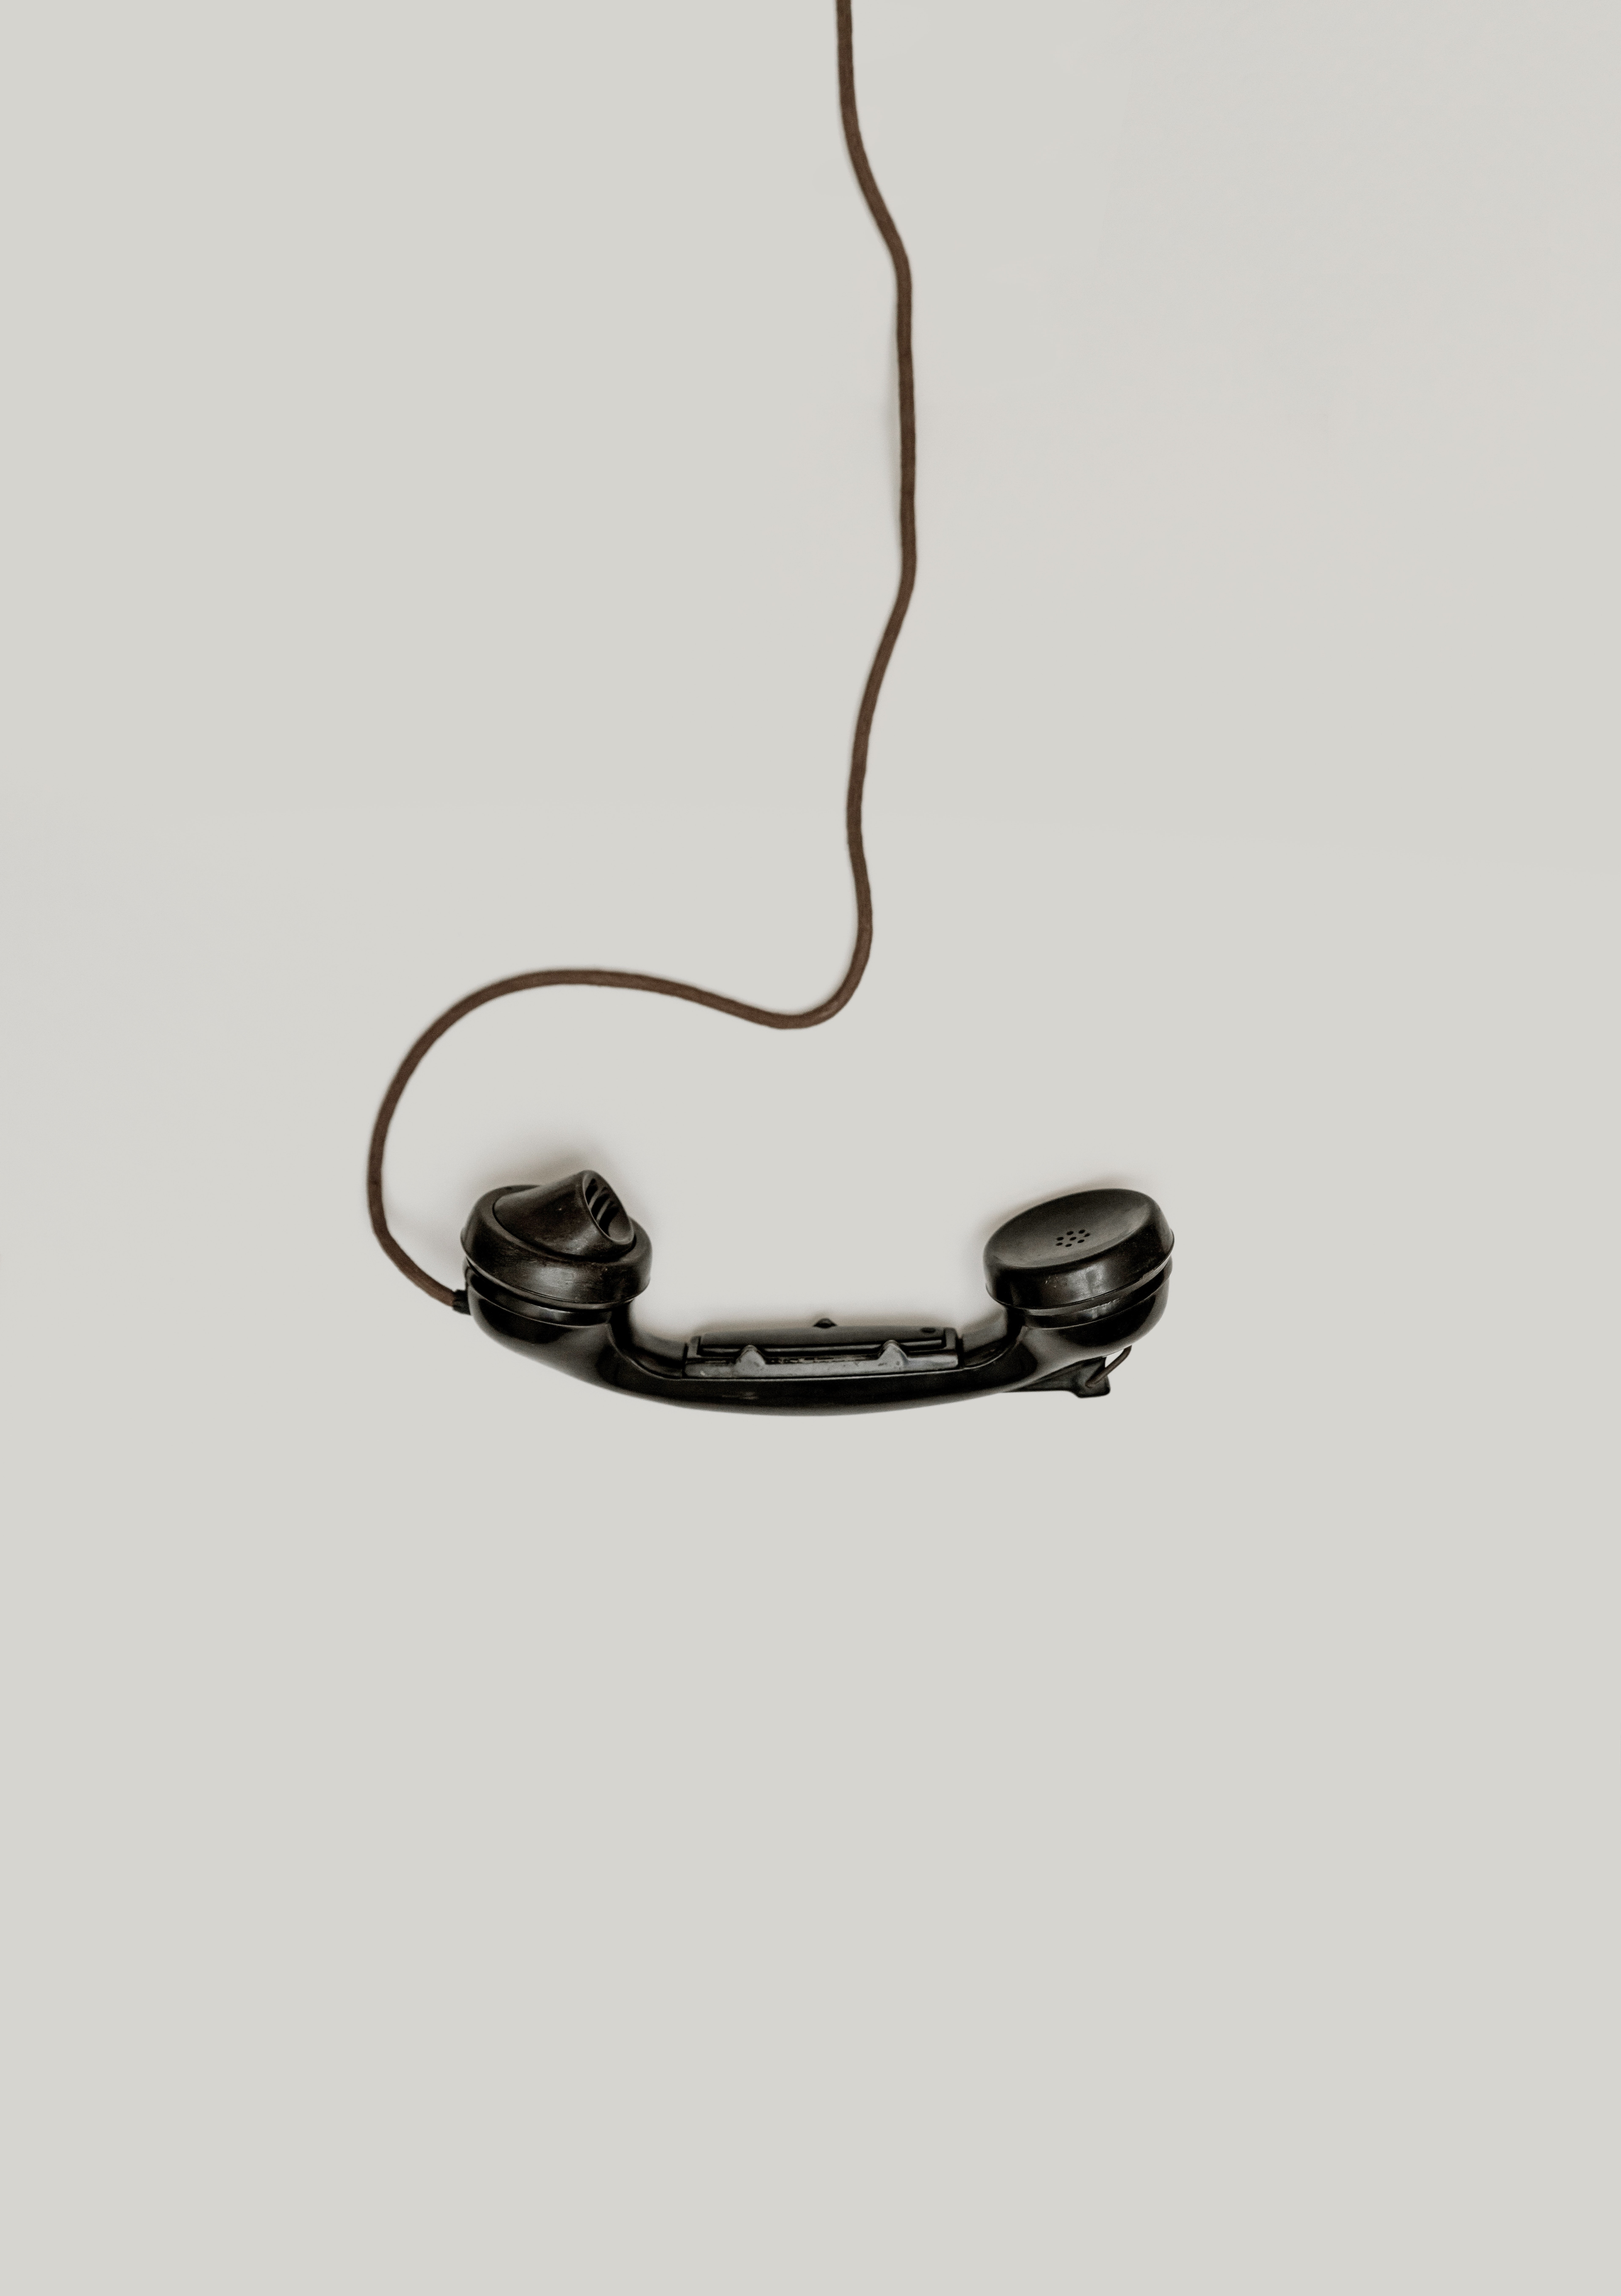 A telephone receiver.  | Source: Unsplash